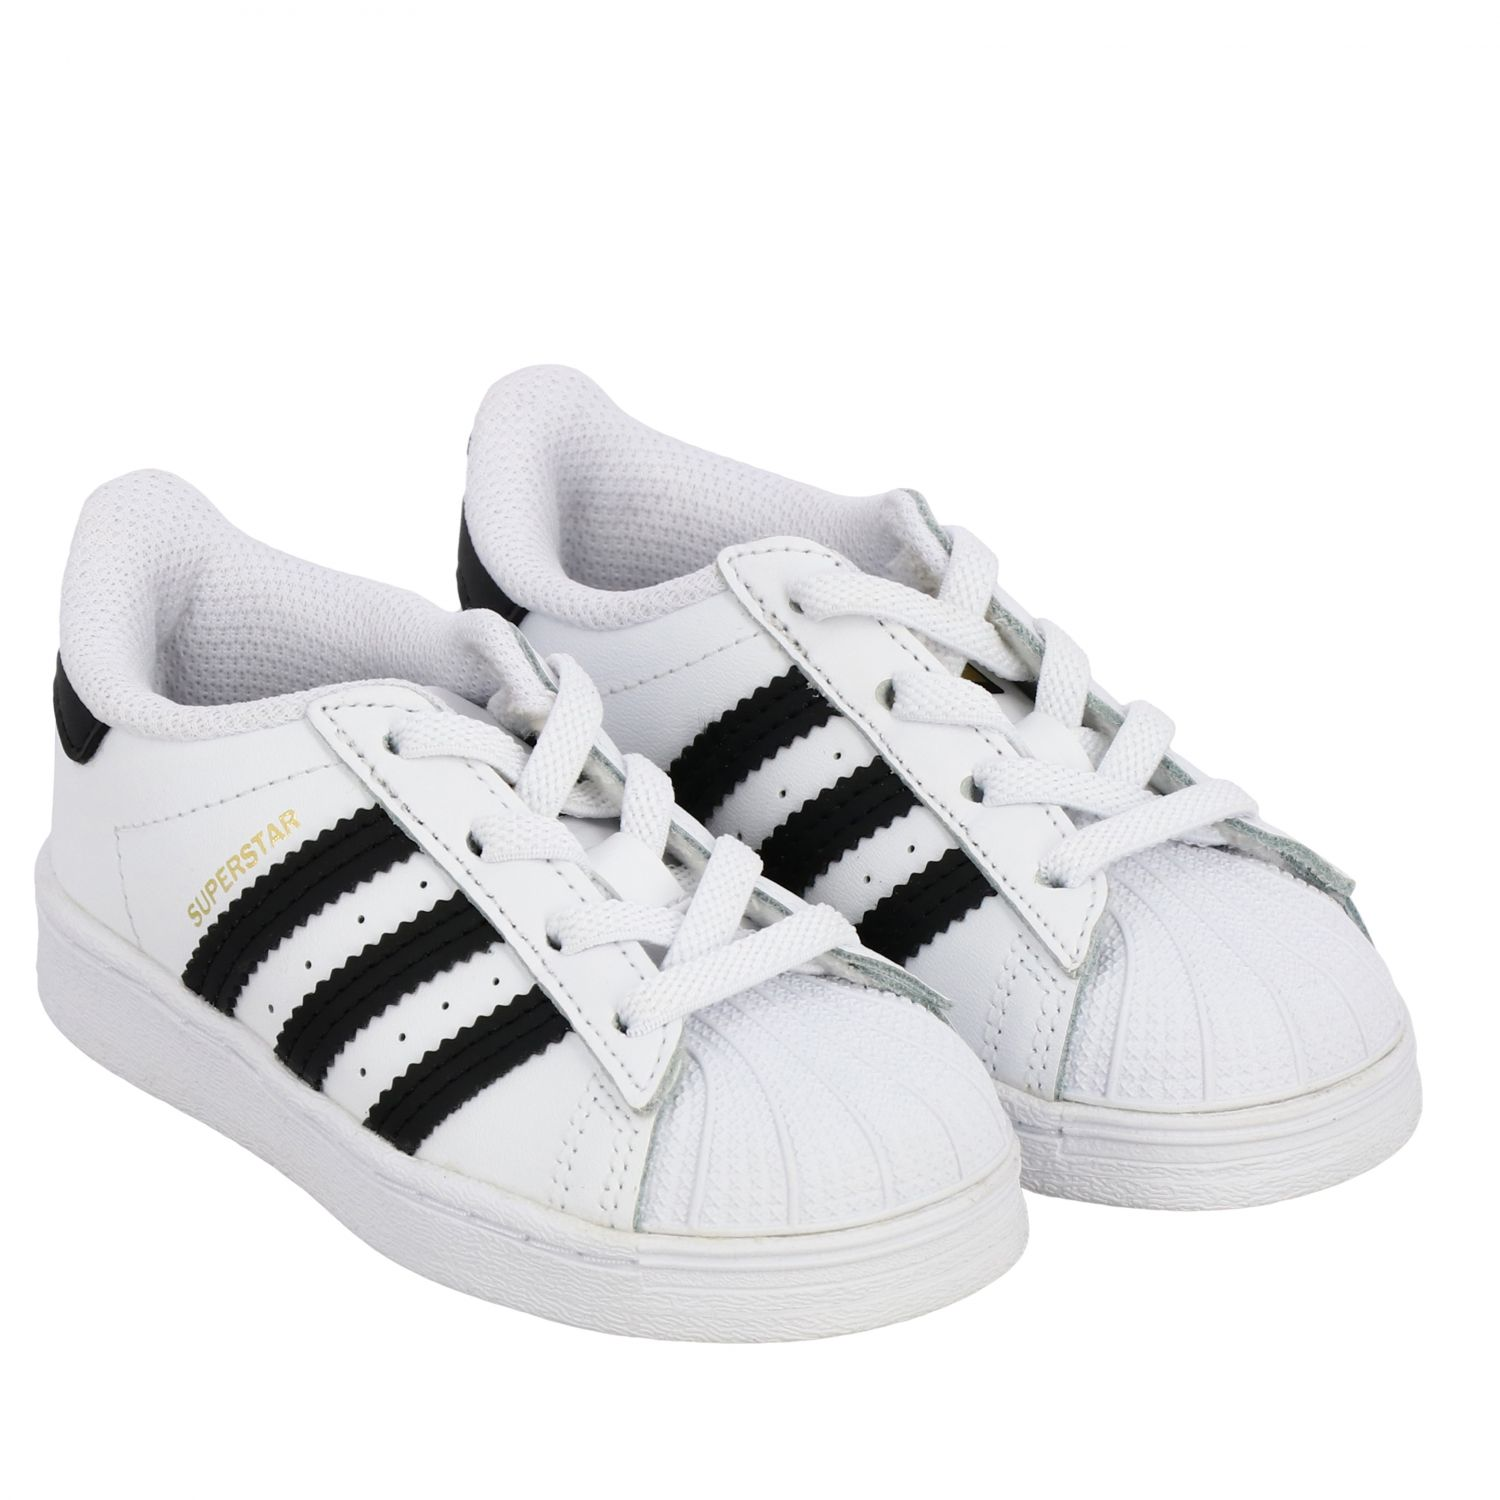 Baskets en cuir Adidas Originals Superstar blanc 2